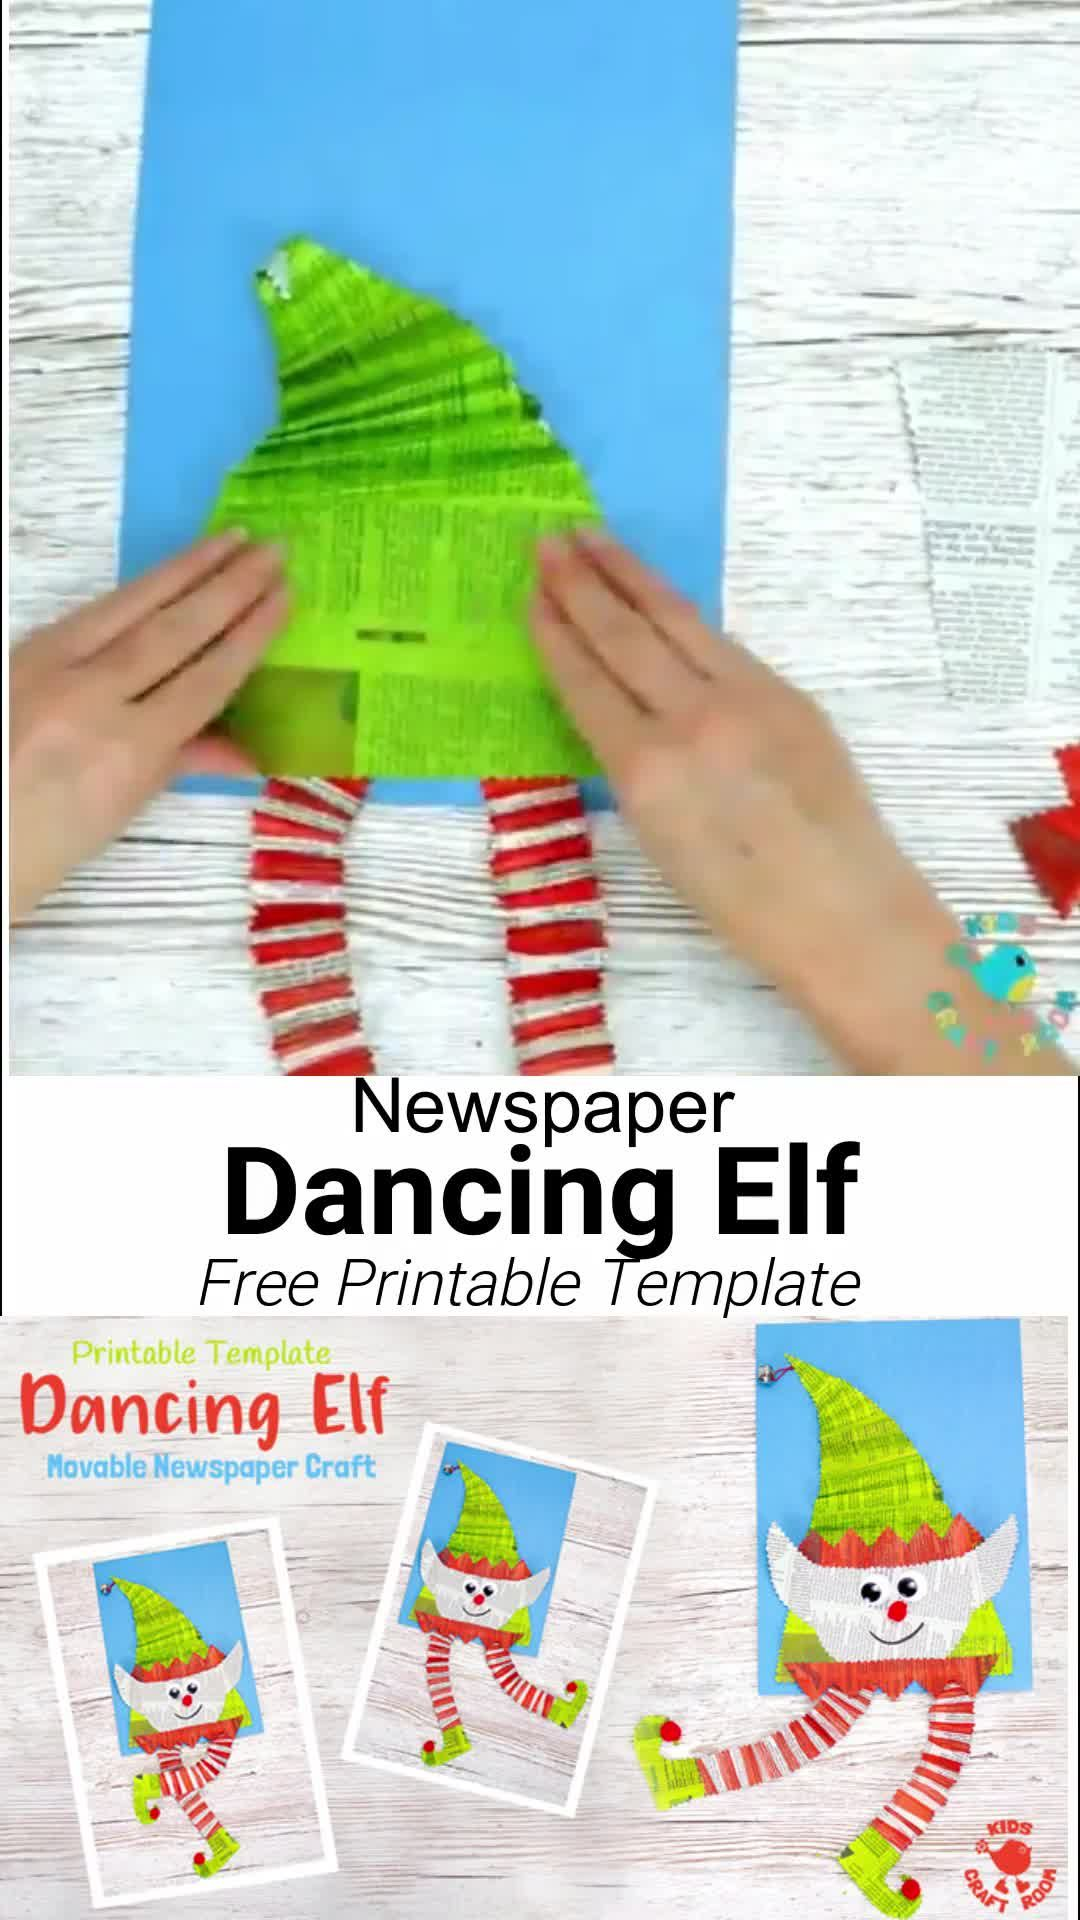 DANCING ELF CRAFT - An adorable interactive Christmas elf craft kids will love. This Christmas craft for kids is super easy to make with the free printable template and old newspaper. Wiggle the elf's body to watch his legs dance around! Such a fun recycled craft. #kidscraftroom #christmascrafts #christmascraftsforkids #kidscrafts #kidsactivities #newspapercrafts #recycledcrafts  #kidscrafts #printable #freeprintables #printablecrafts #elf #elfcrafts #elfart #christmas